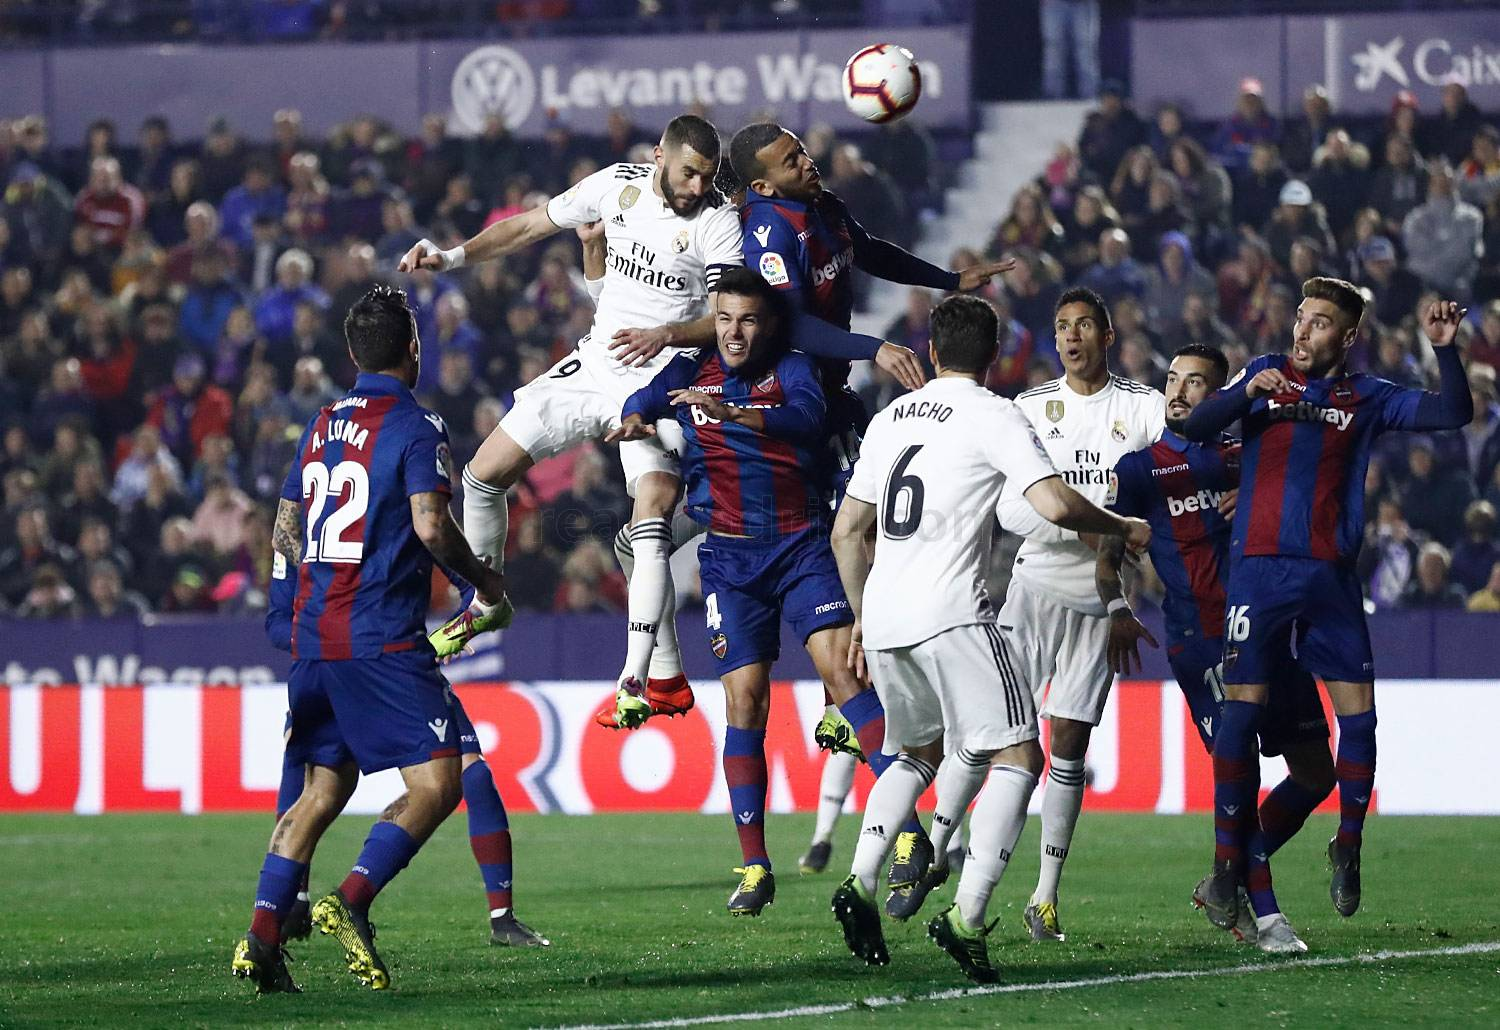 Real Madrid - Levante - Real Madrid - 24-02-2019